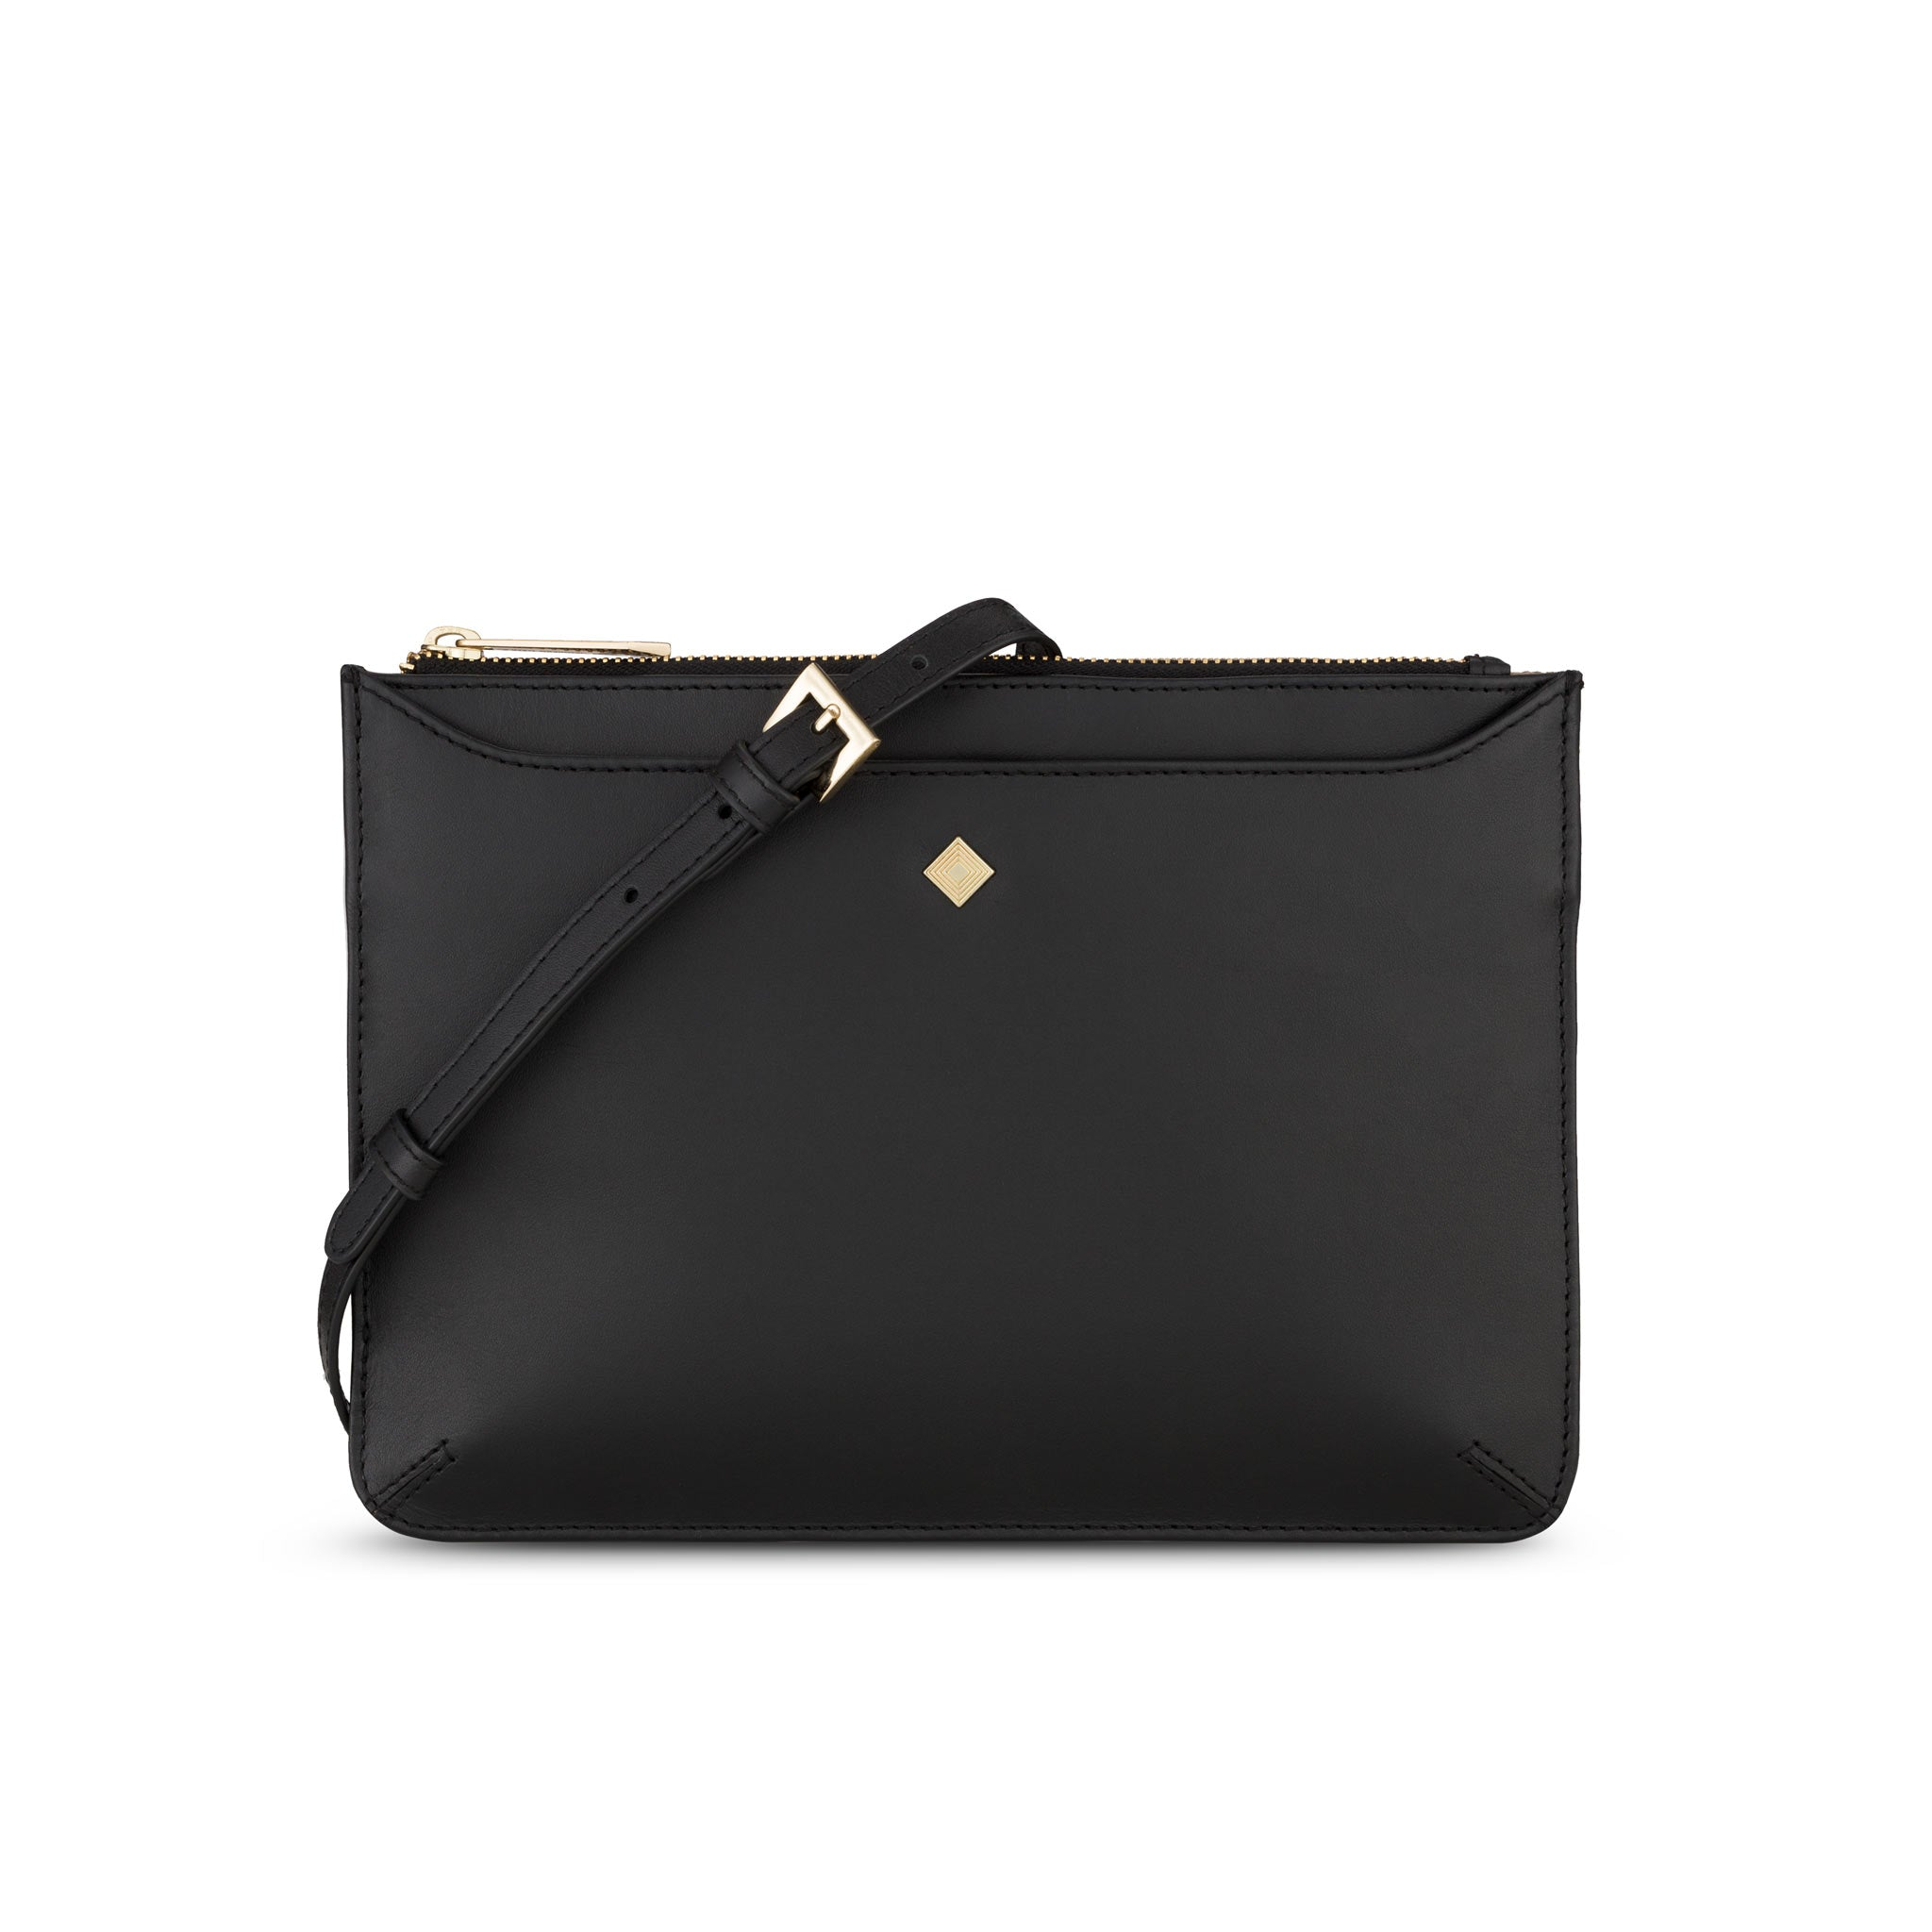 Maxi Sakura Pouch - COMING SOON - Jennifer Hamley luxury leather handbags and laptop bag for working women